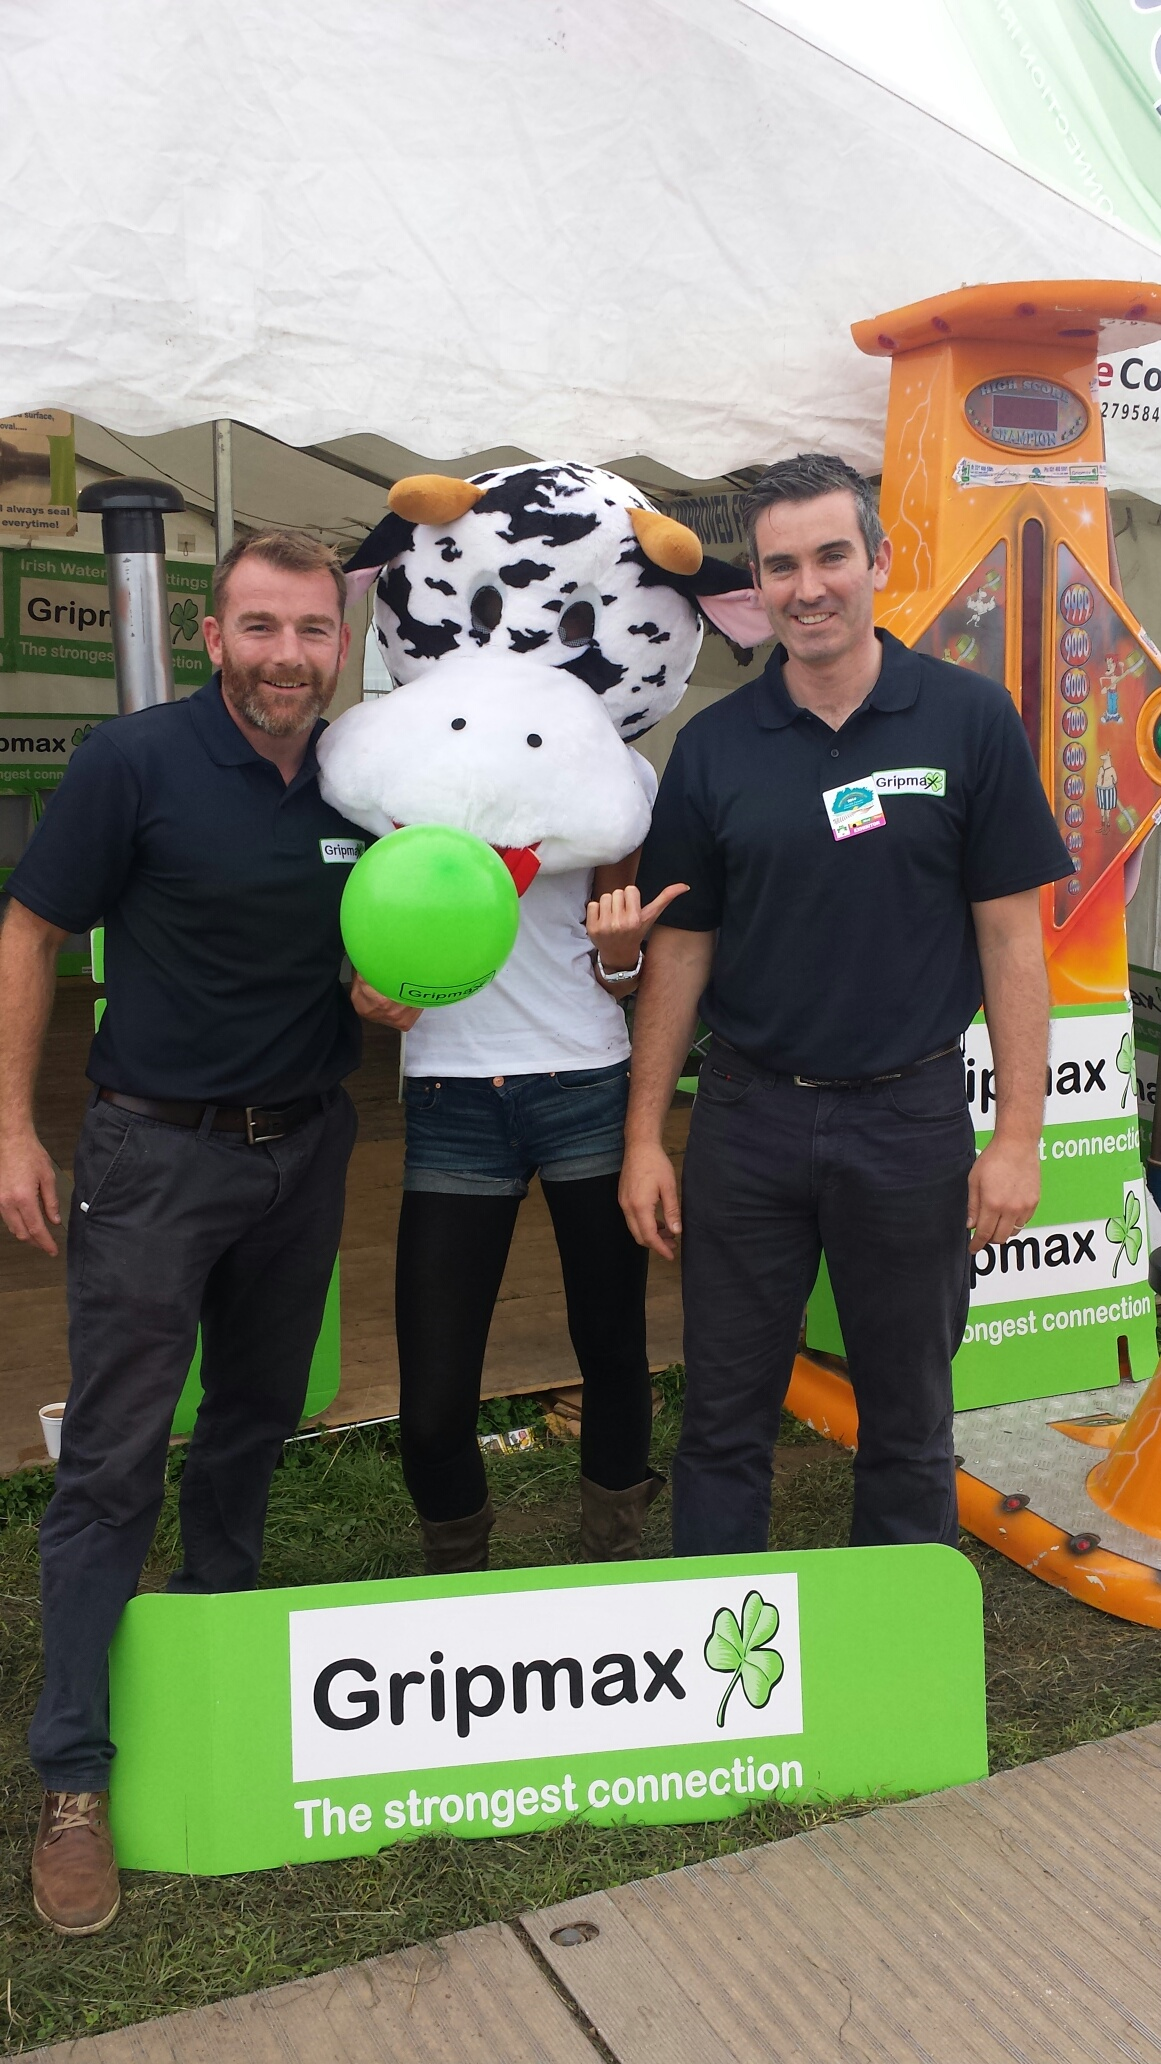 Gripmax @ The Ploughing